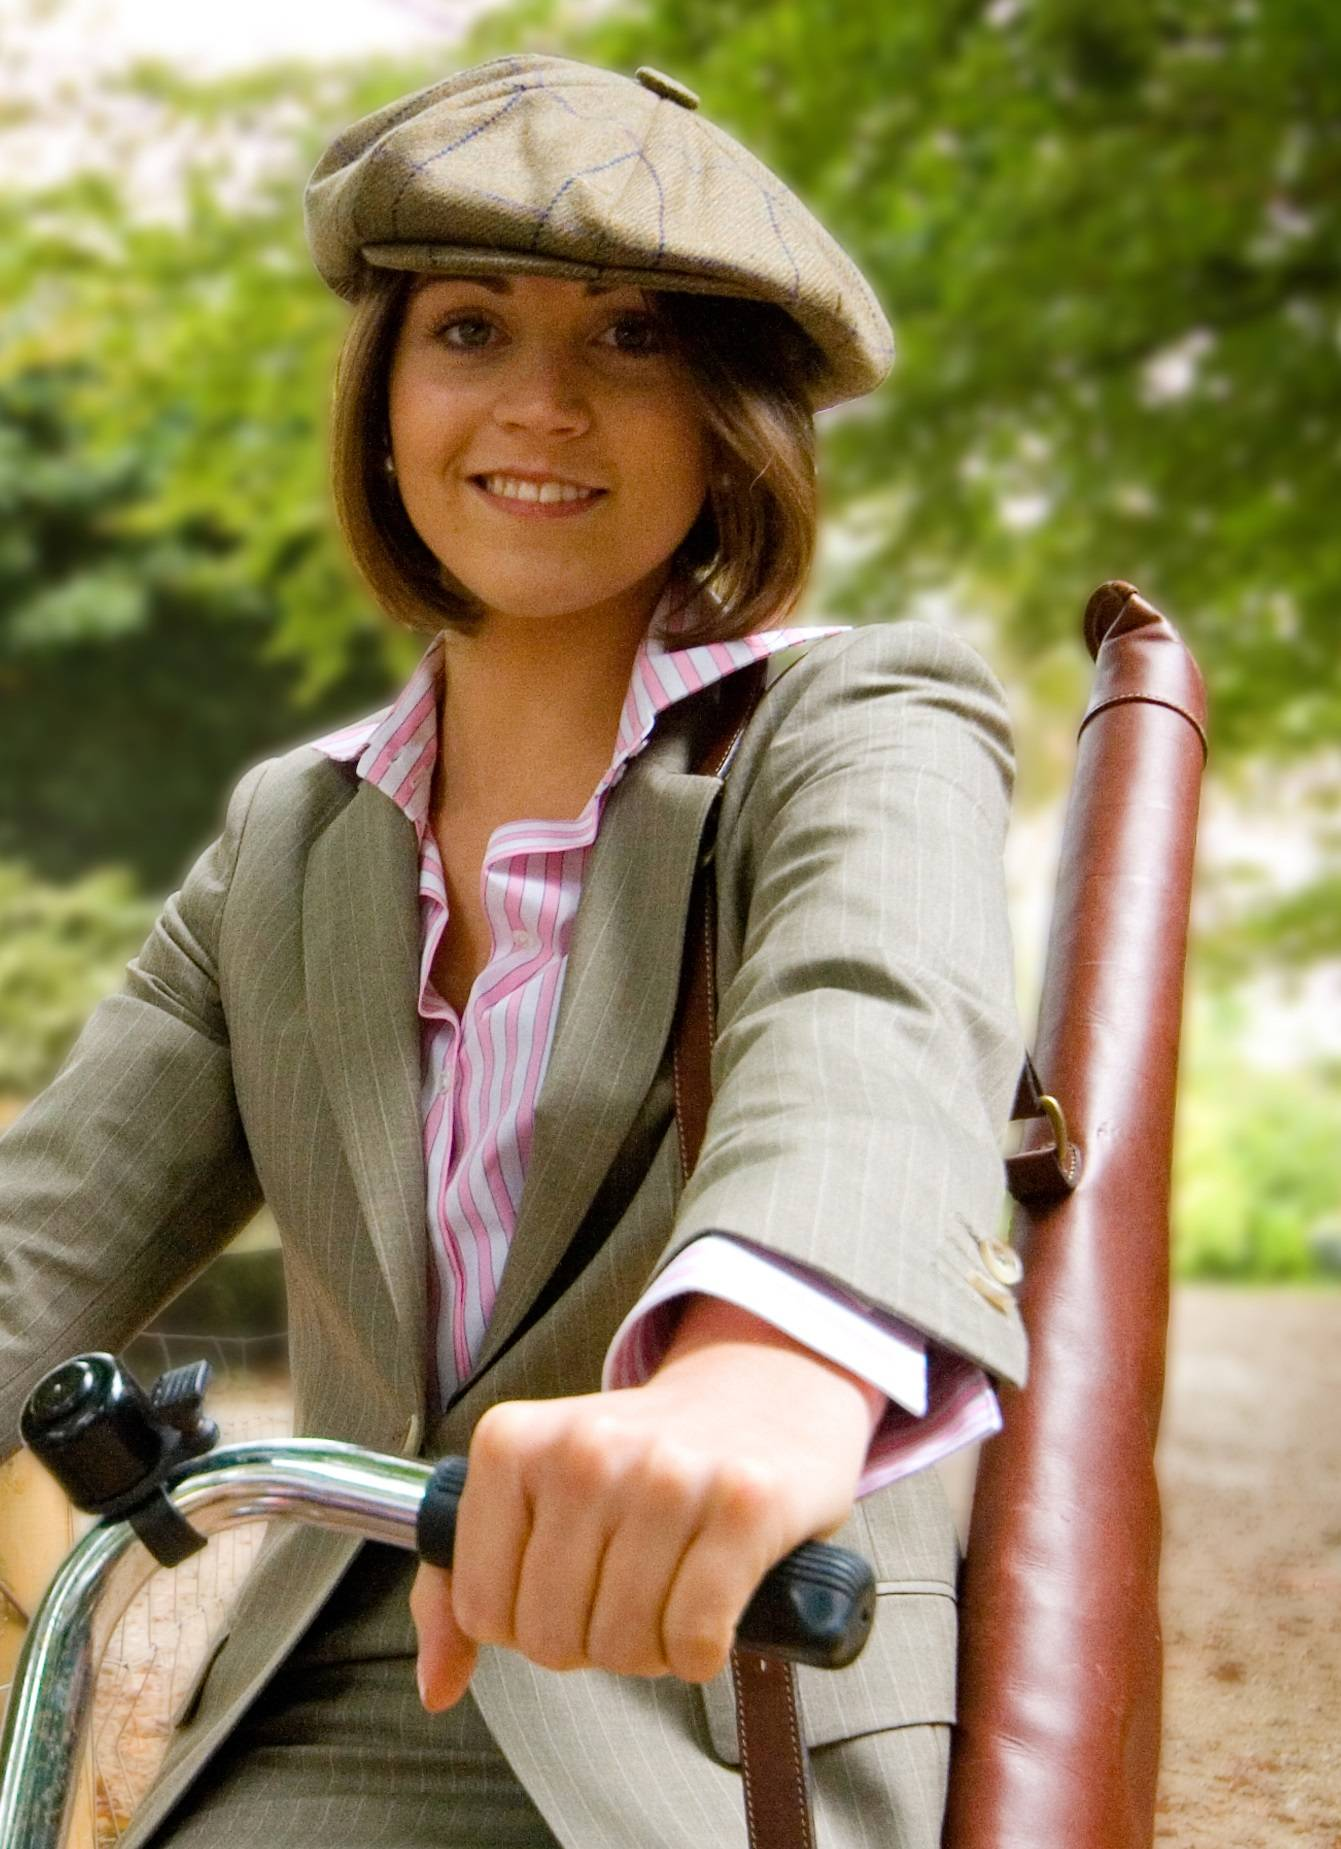 Bicycle, photoshoot, ladies suiting